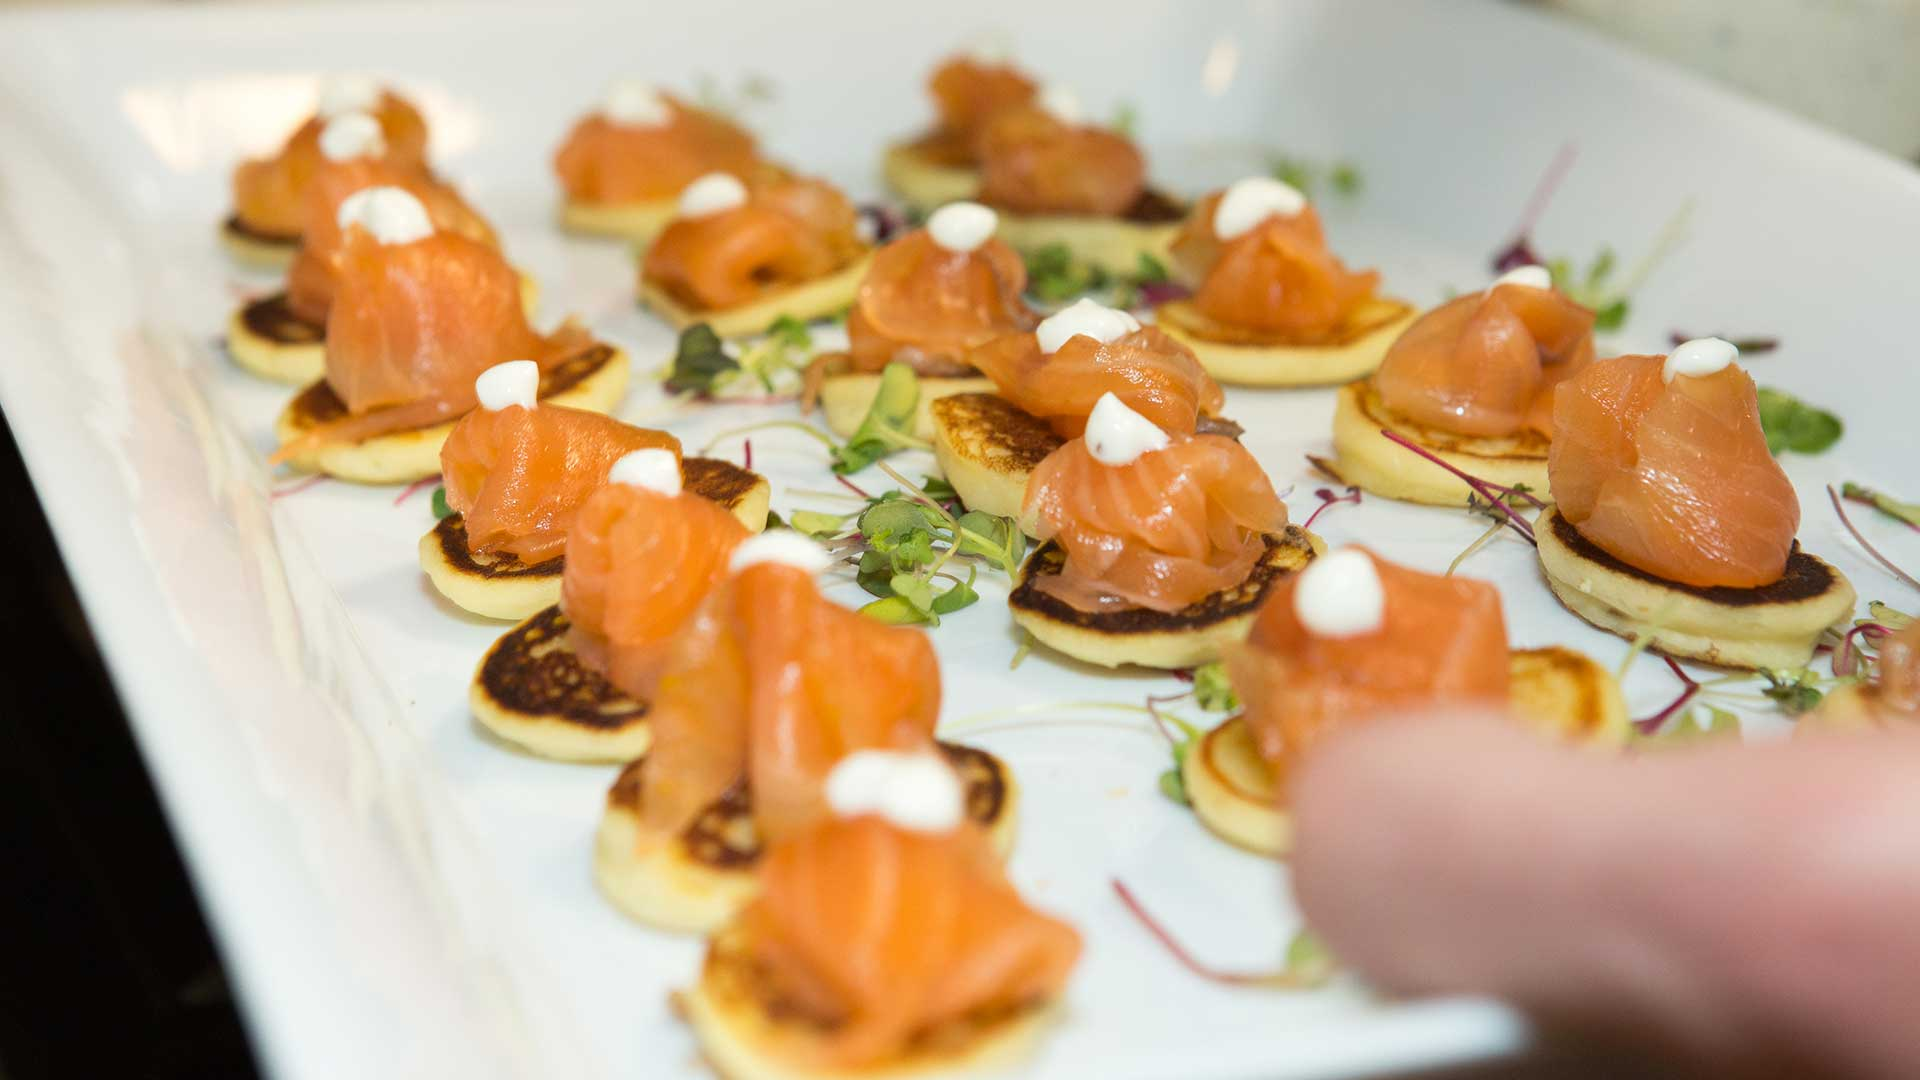 Wedding Catering Chef Challet Salmon Gravlax on Blini